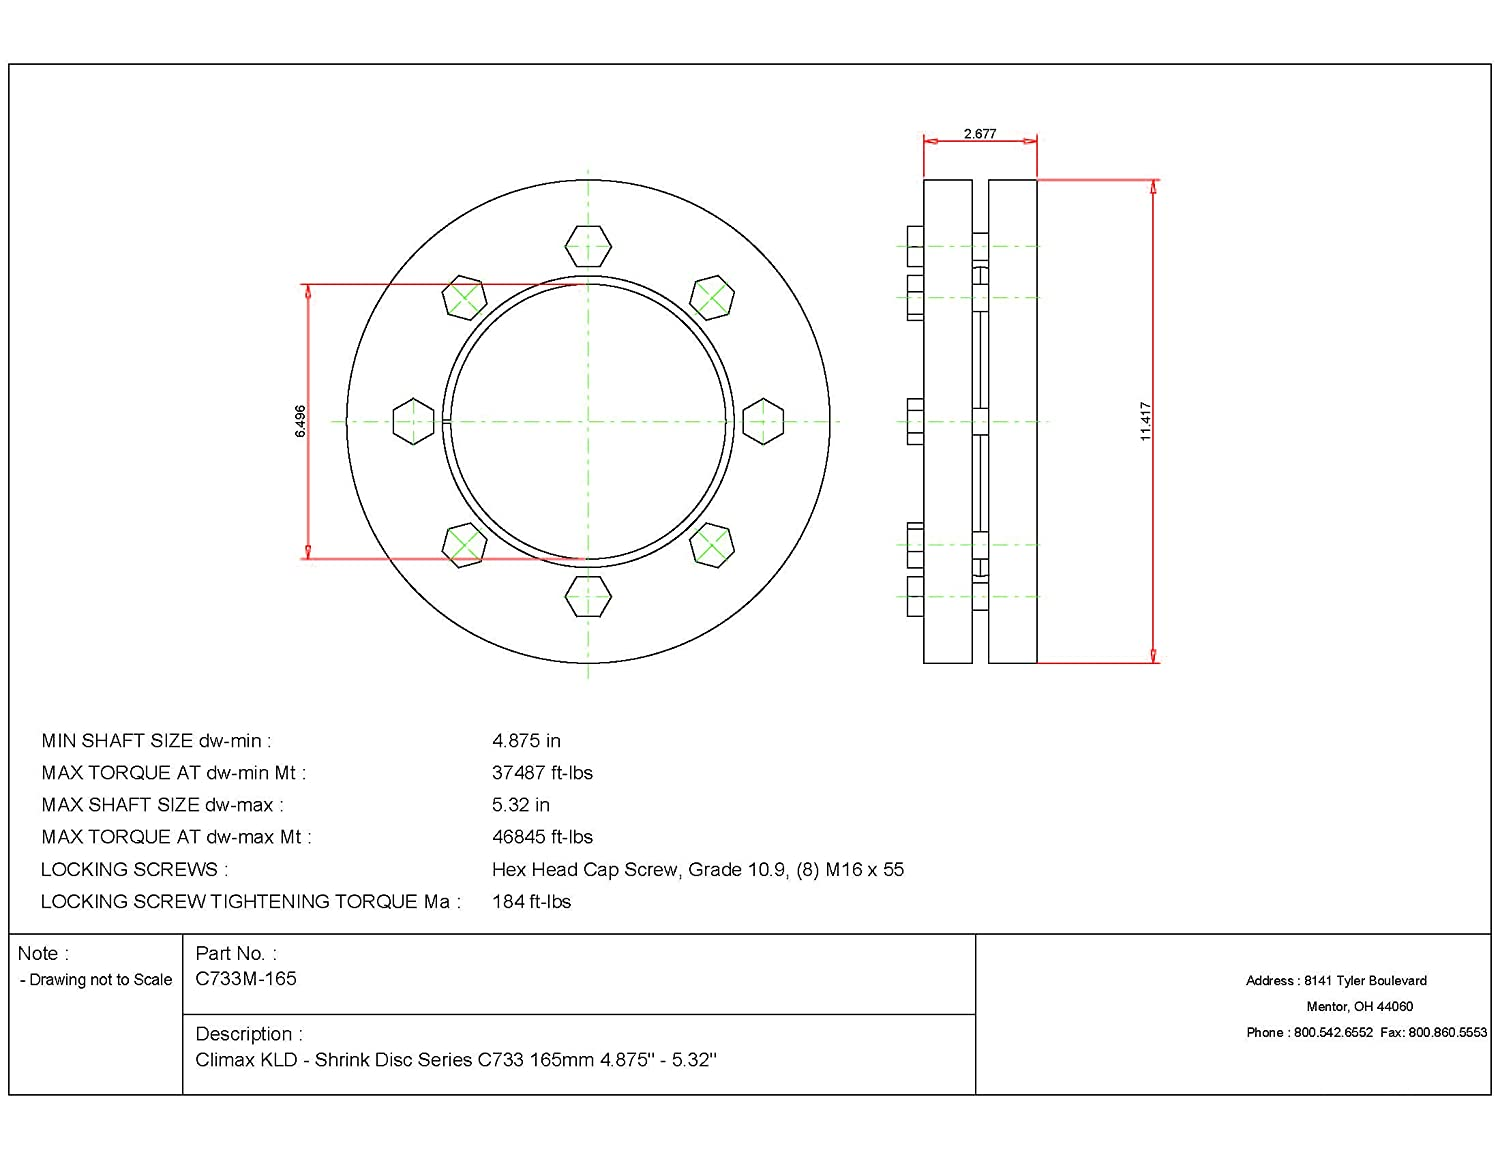 Steel with Zinc Plated Outer Rings Climax Metals C733M-280 Shrink Disc 5.28 Width 280 mm Diameter Bore Standard Duty 11.02 ID